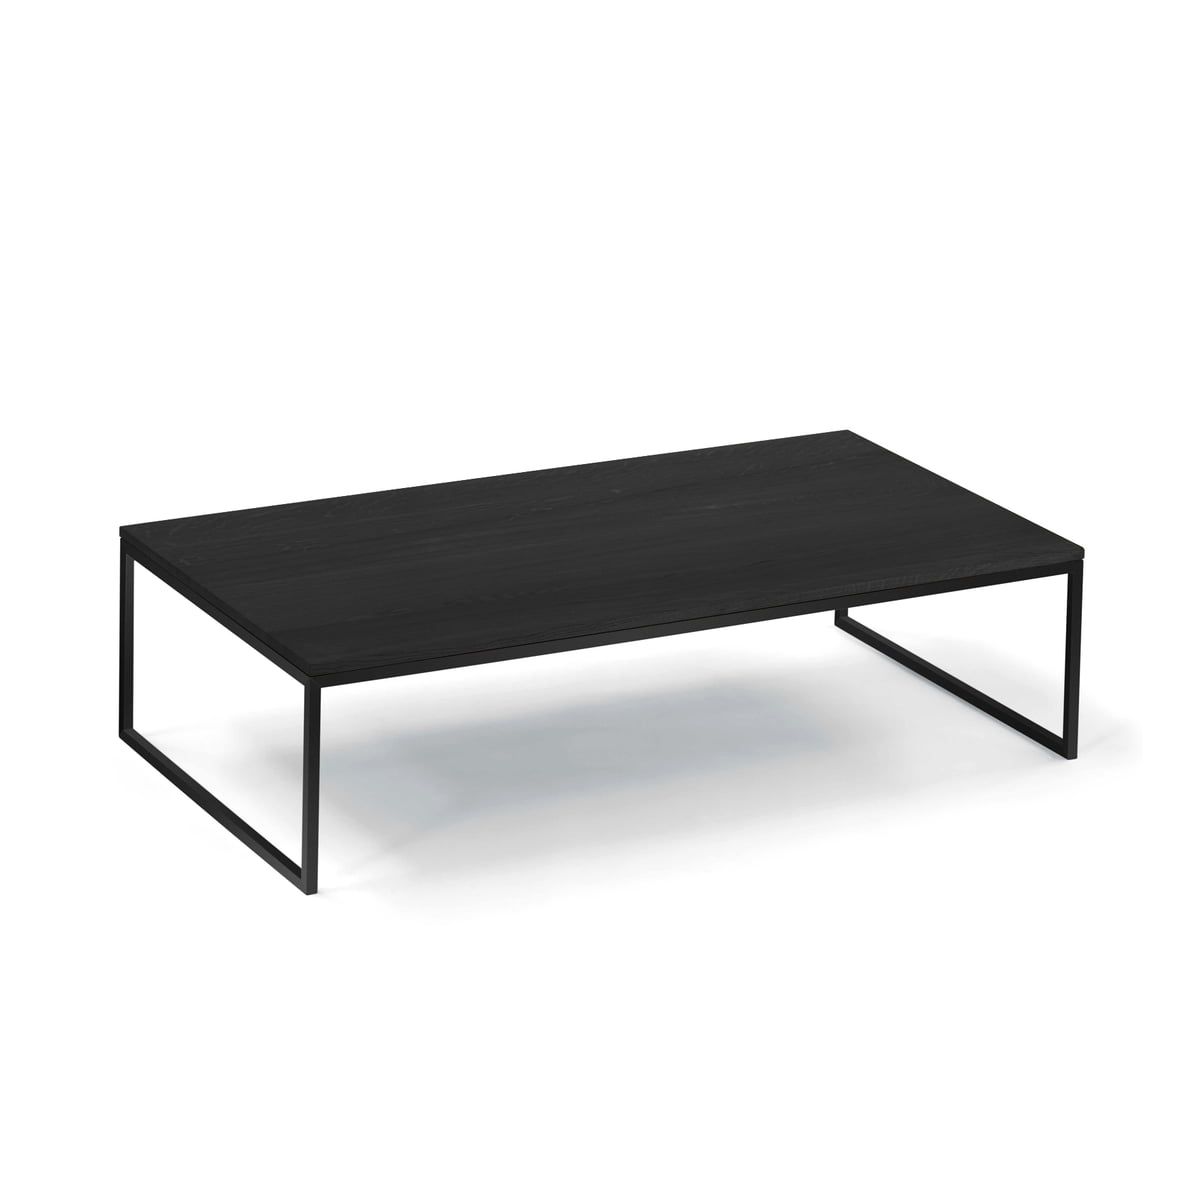 Less h 52 coffee table by hans hansen hans hansen less h 52 va coffee table sled base black geotapseo Images